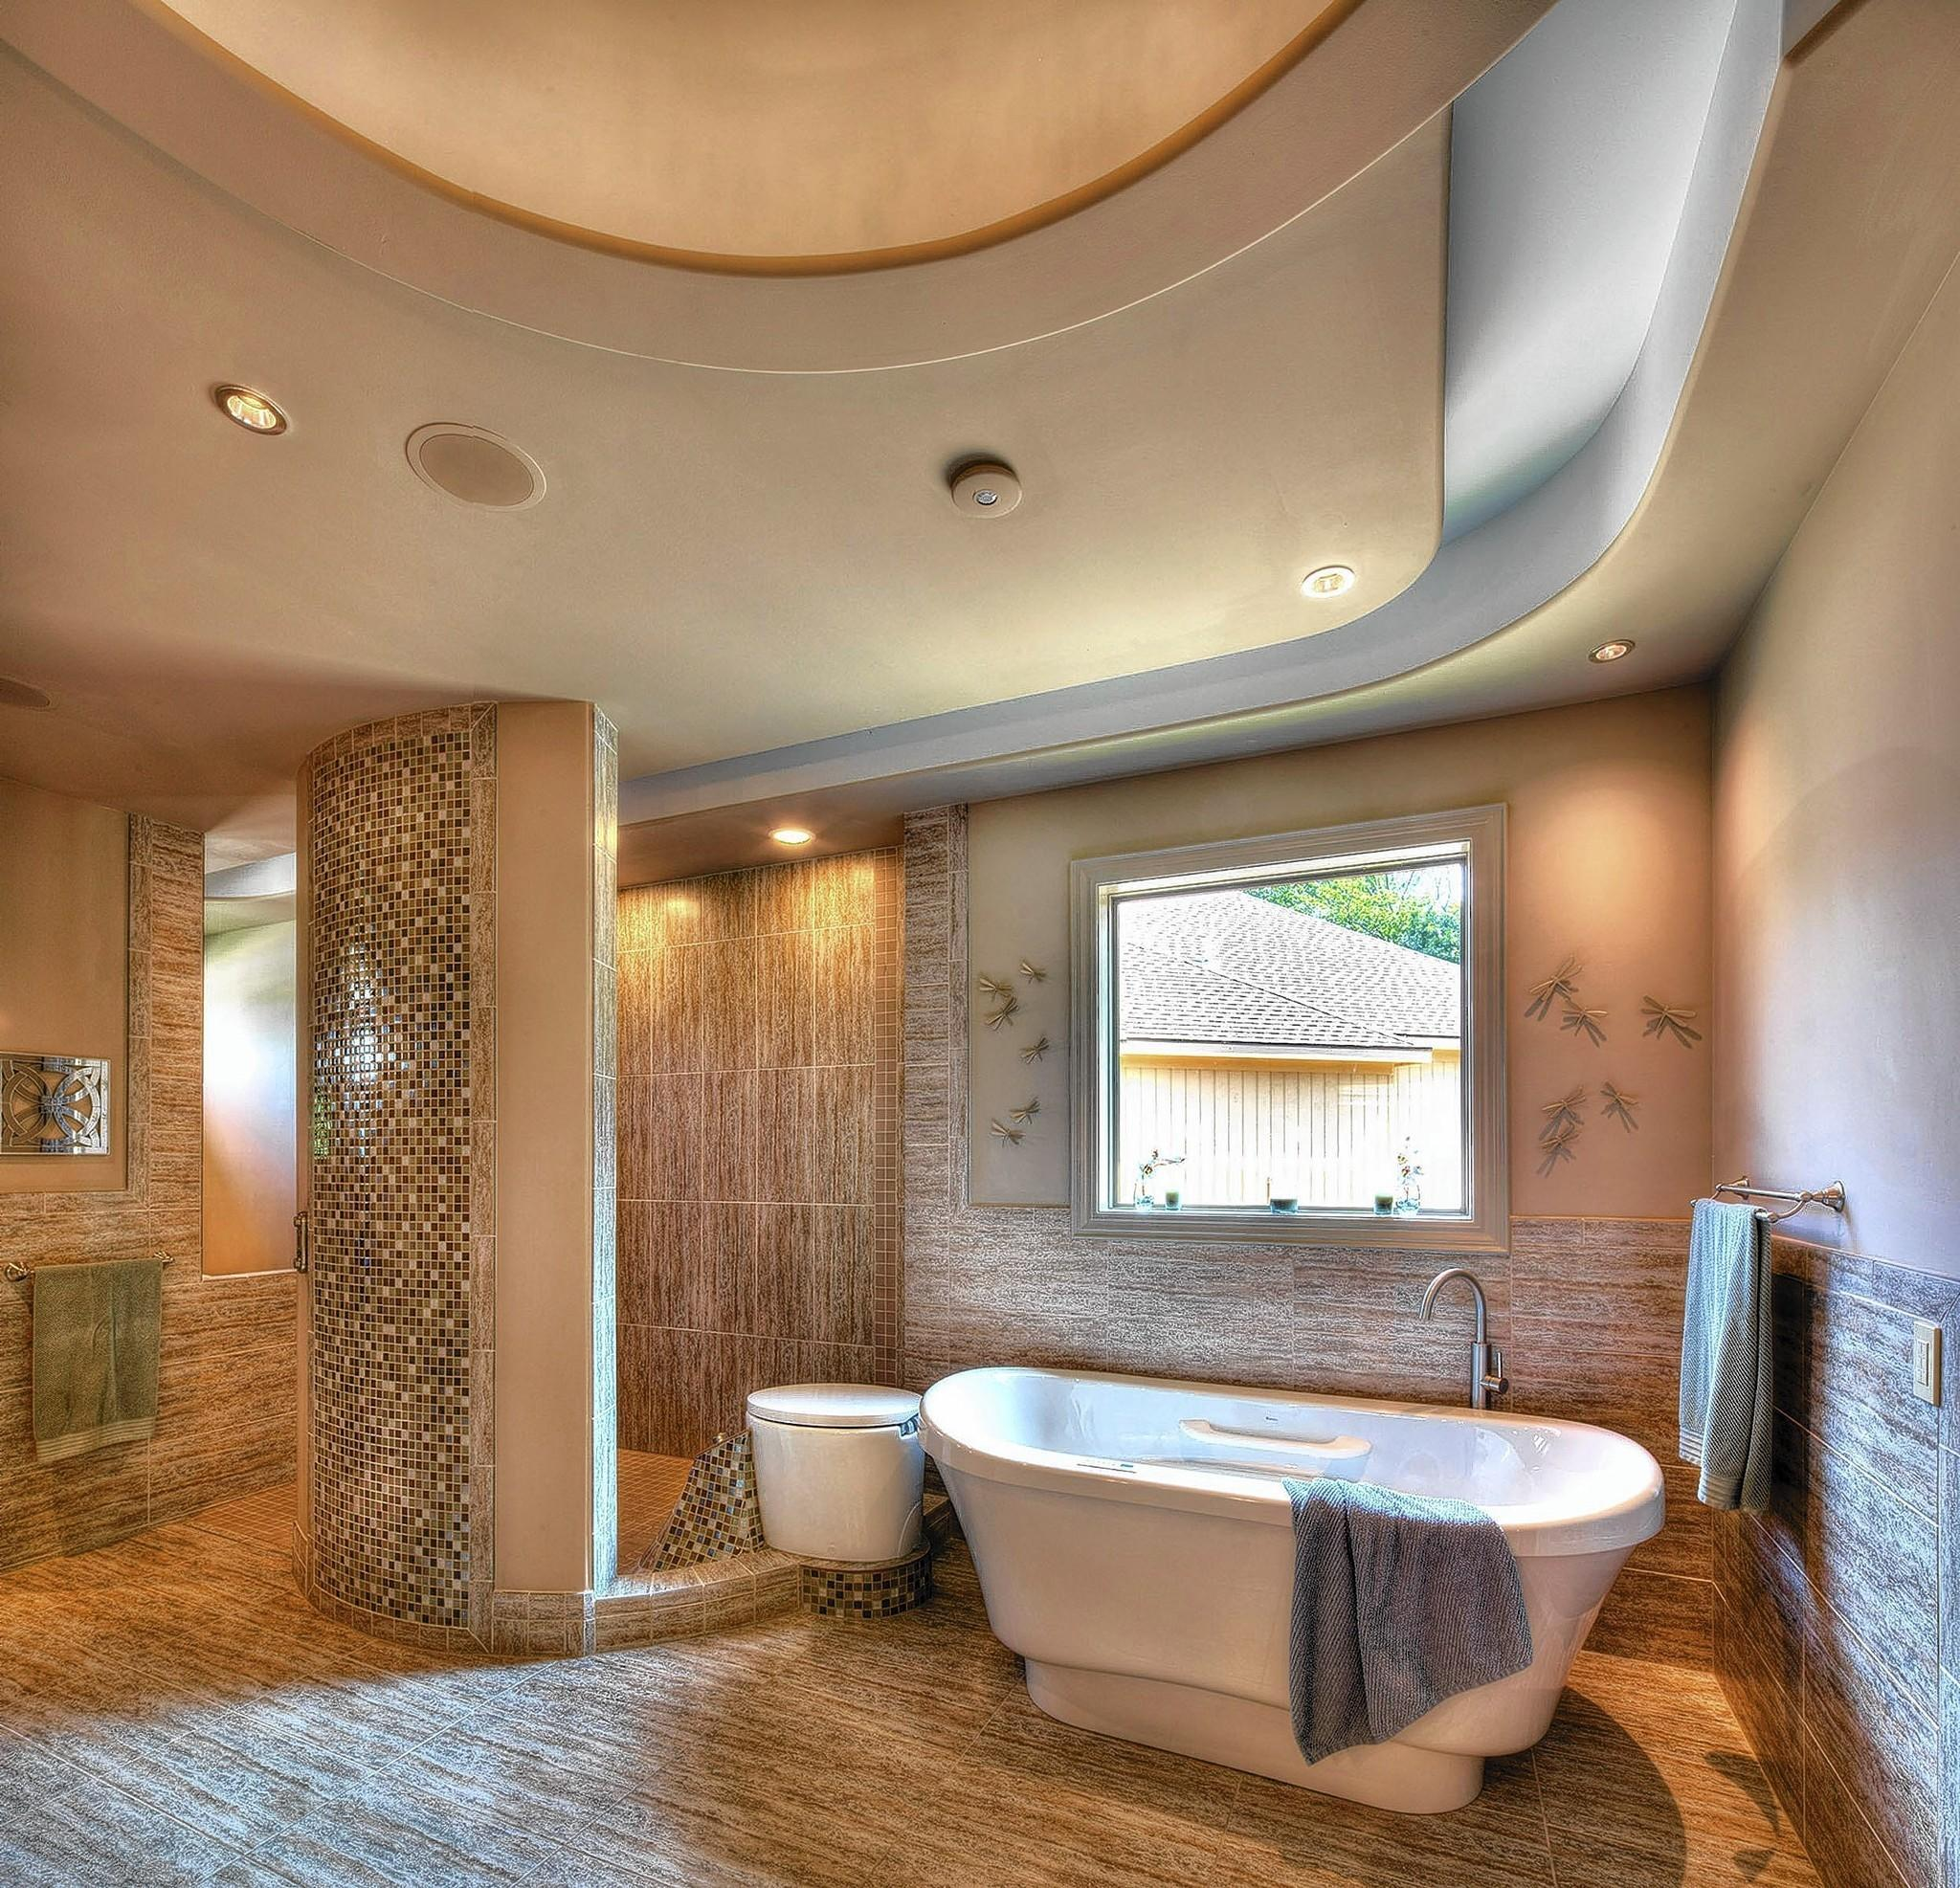 Beige And Bone Are Among The Top Bath Color Schemes.